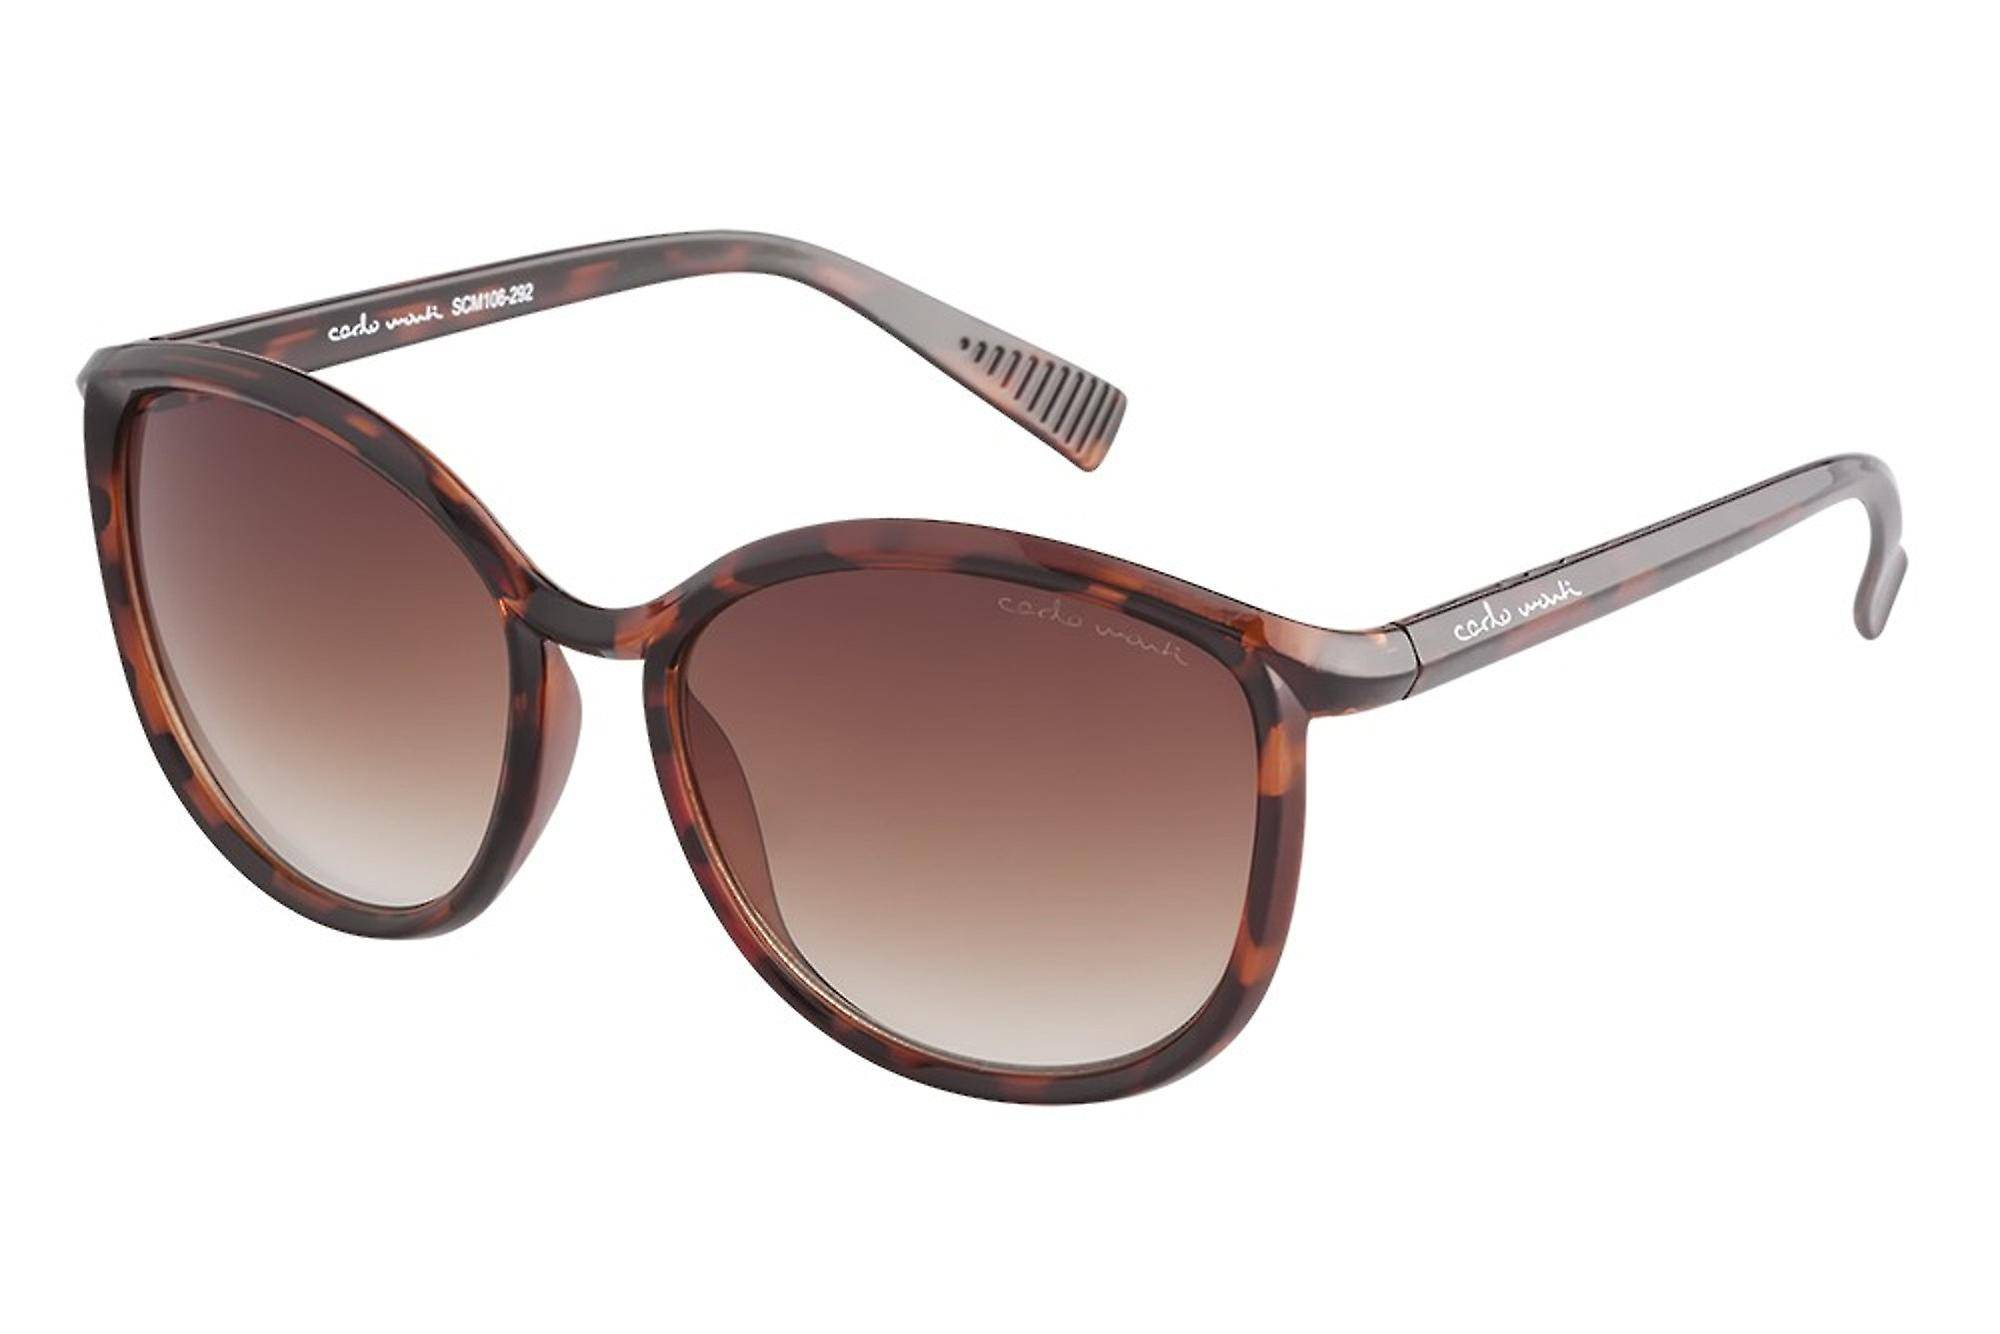 Carlo Monti Elegant sunglasses for women by Carlo Monti with 100% UV protection...